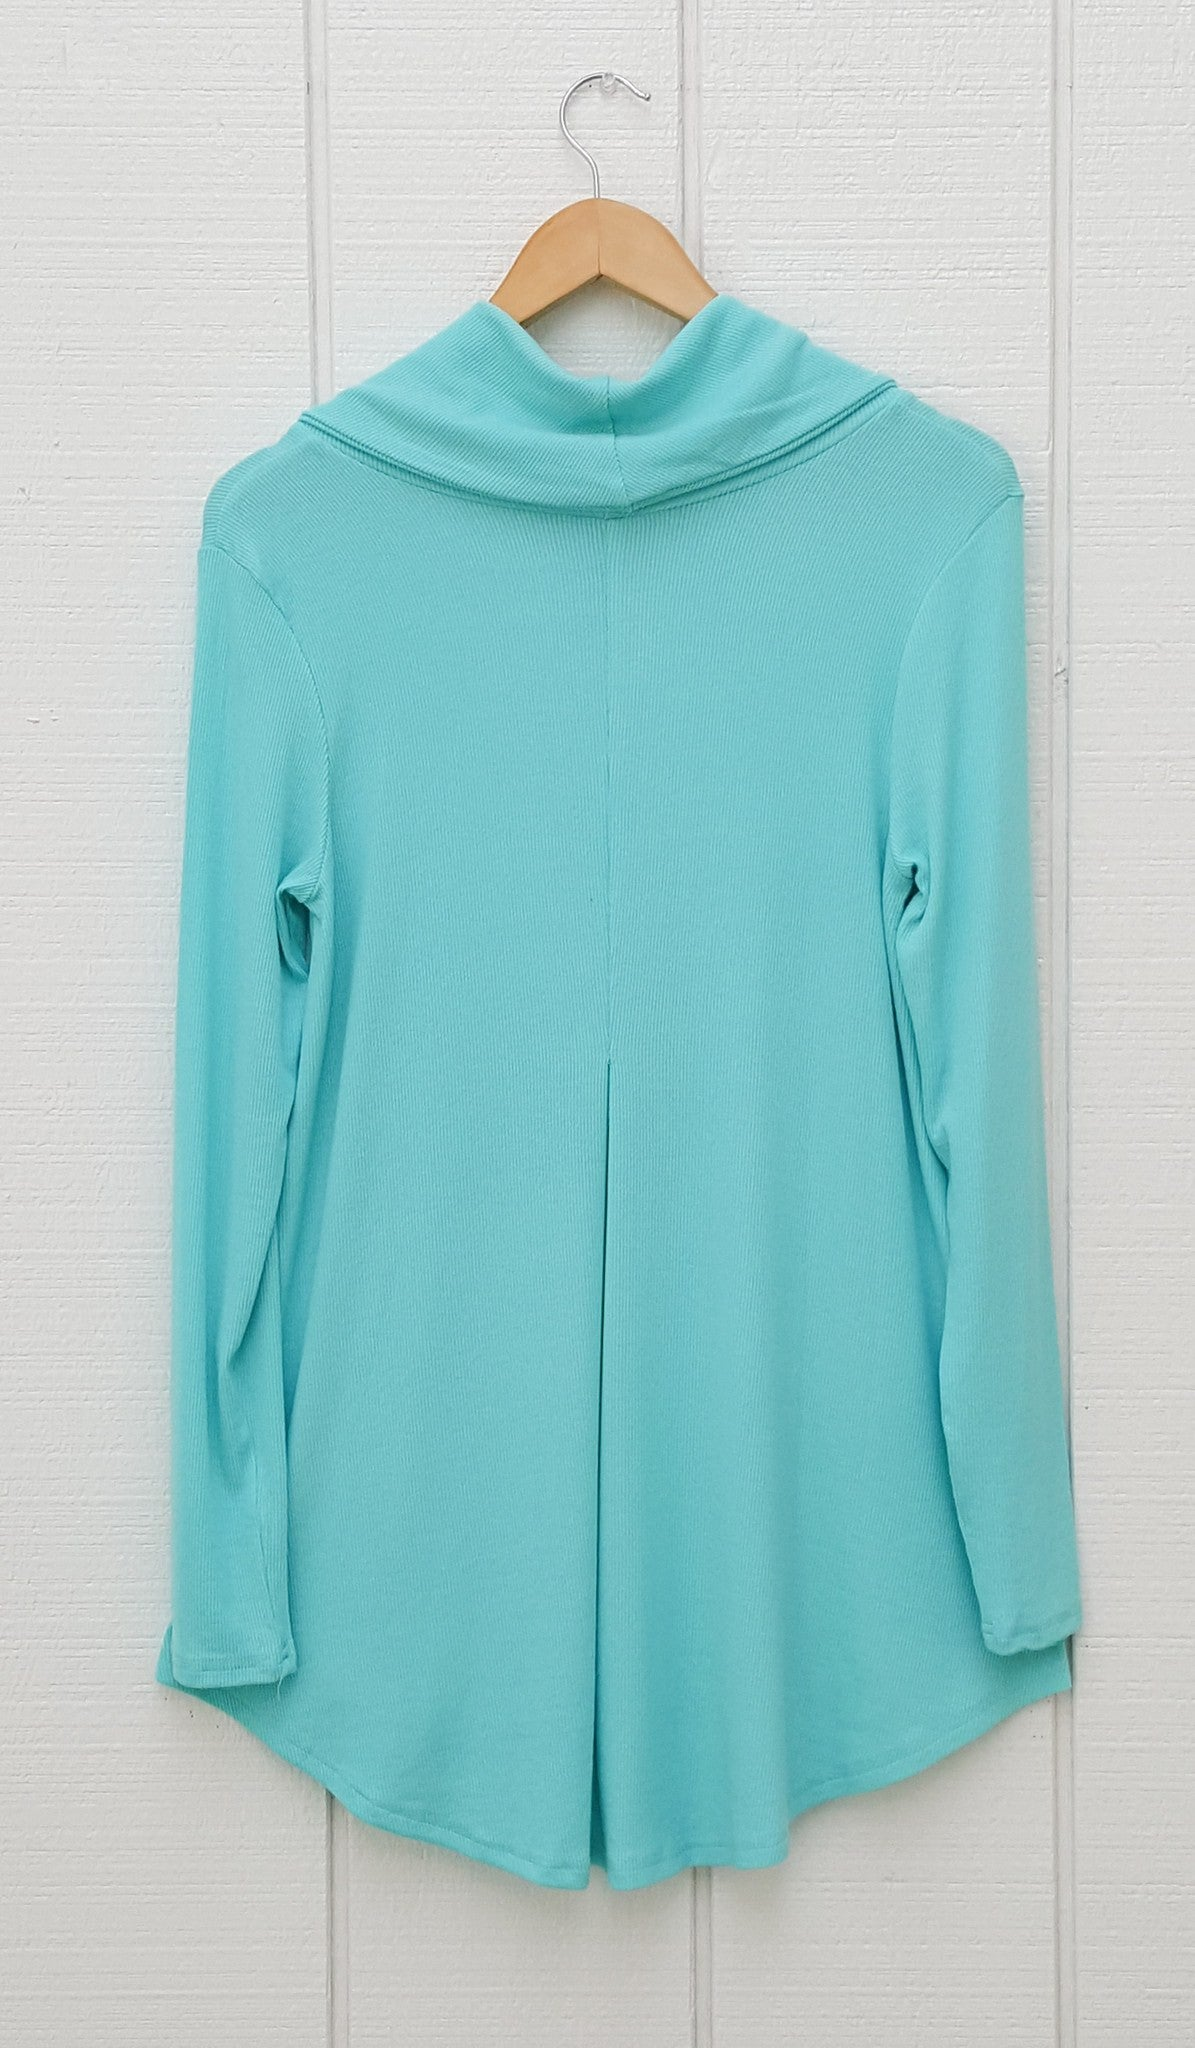 Ema Long Loose Modest Cowl Neck Top - Aqua Blue - ARTIZARA.COM